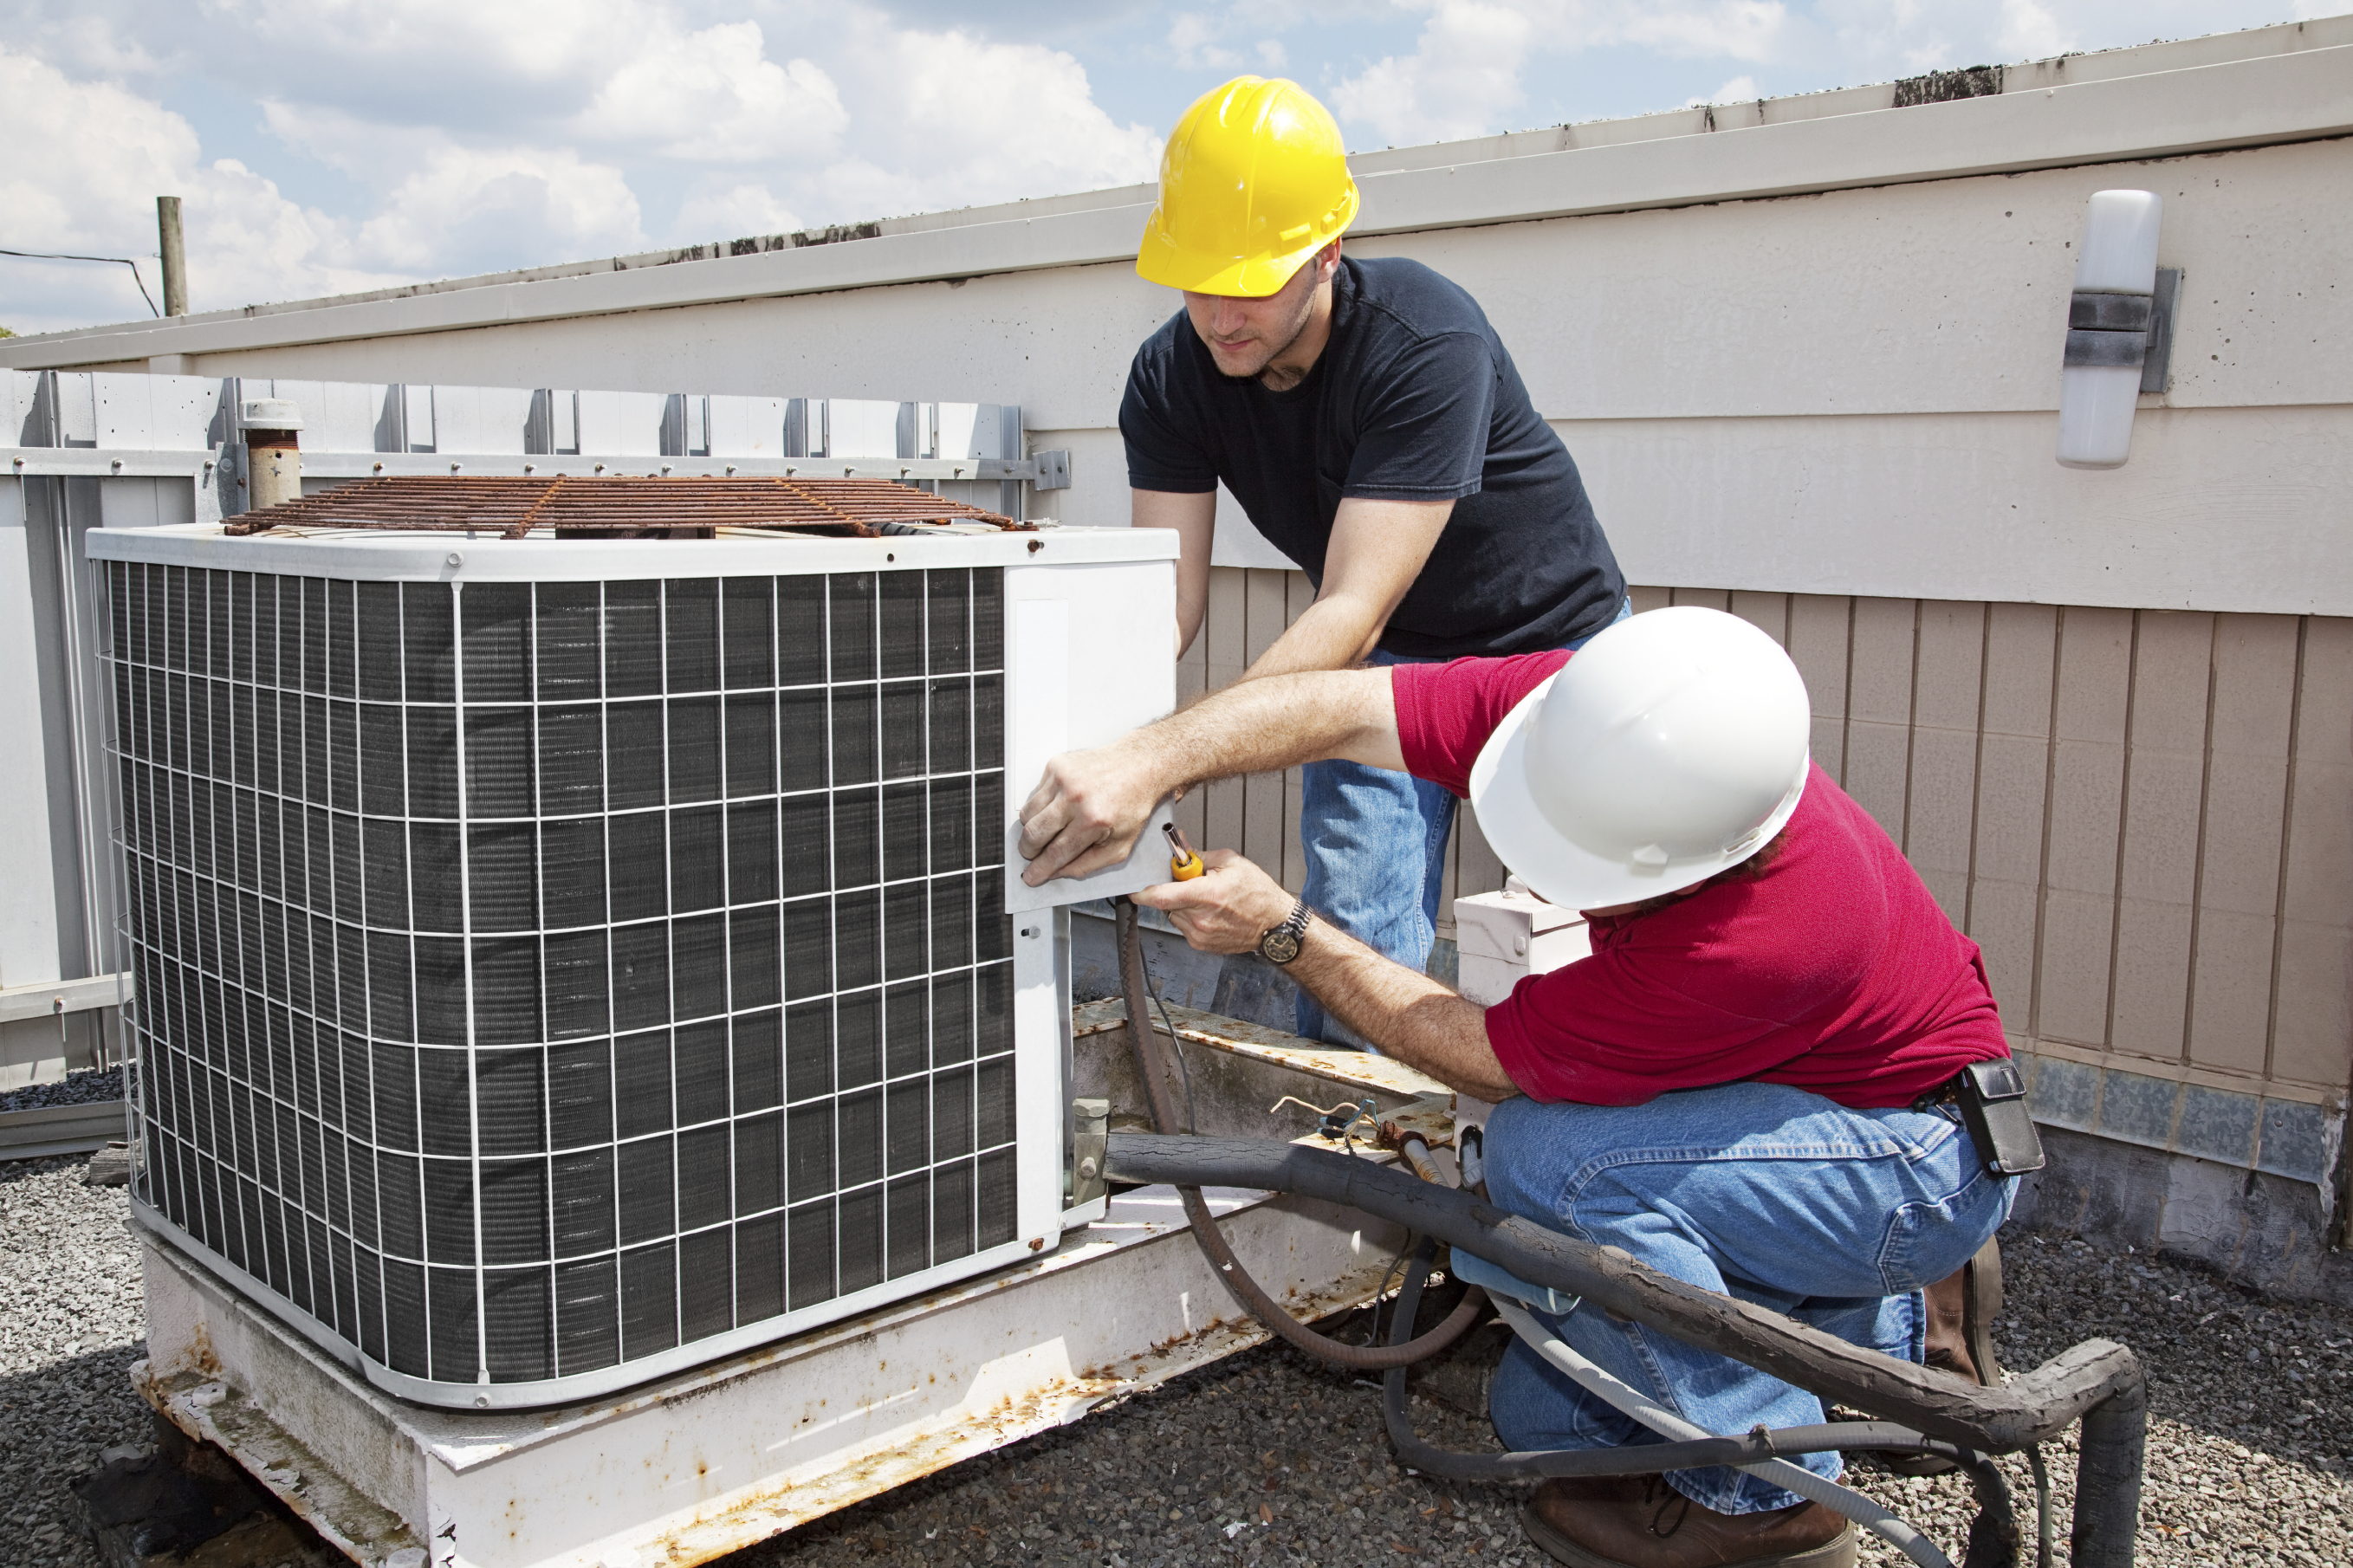 Two workers on the roof of a building working on the air conditioning unit.